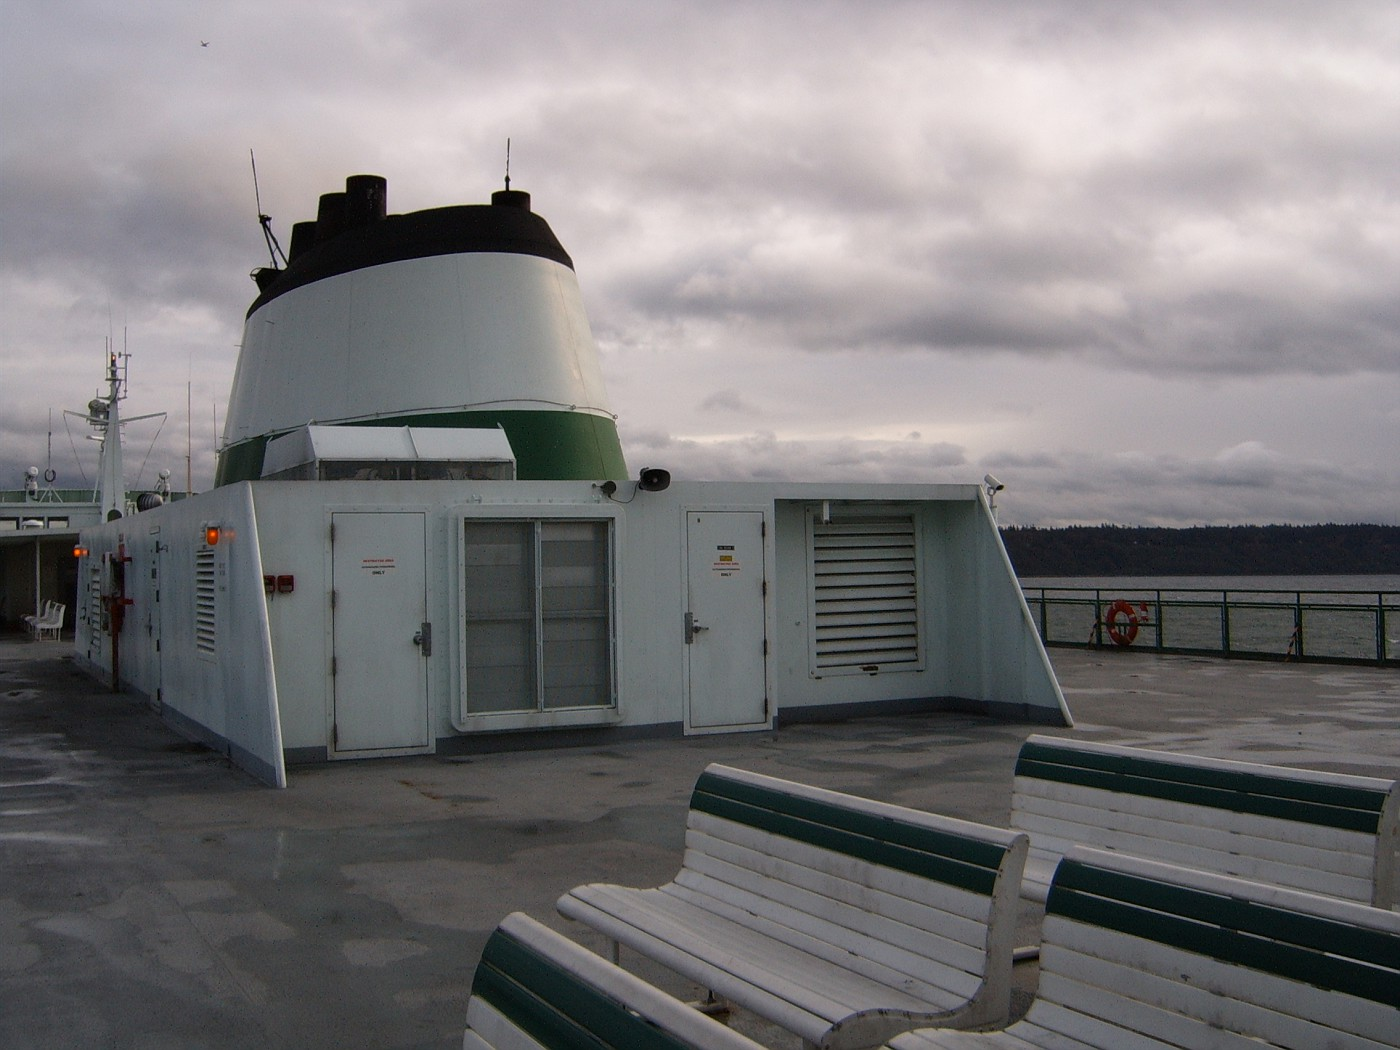 On ferry's deck